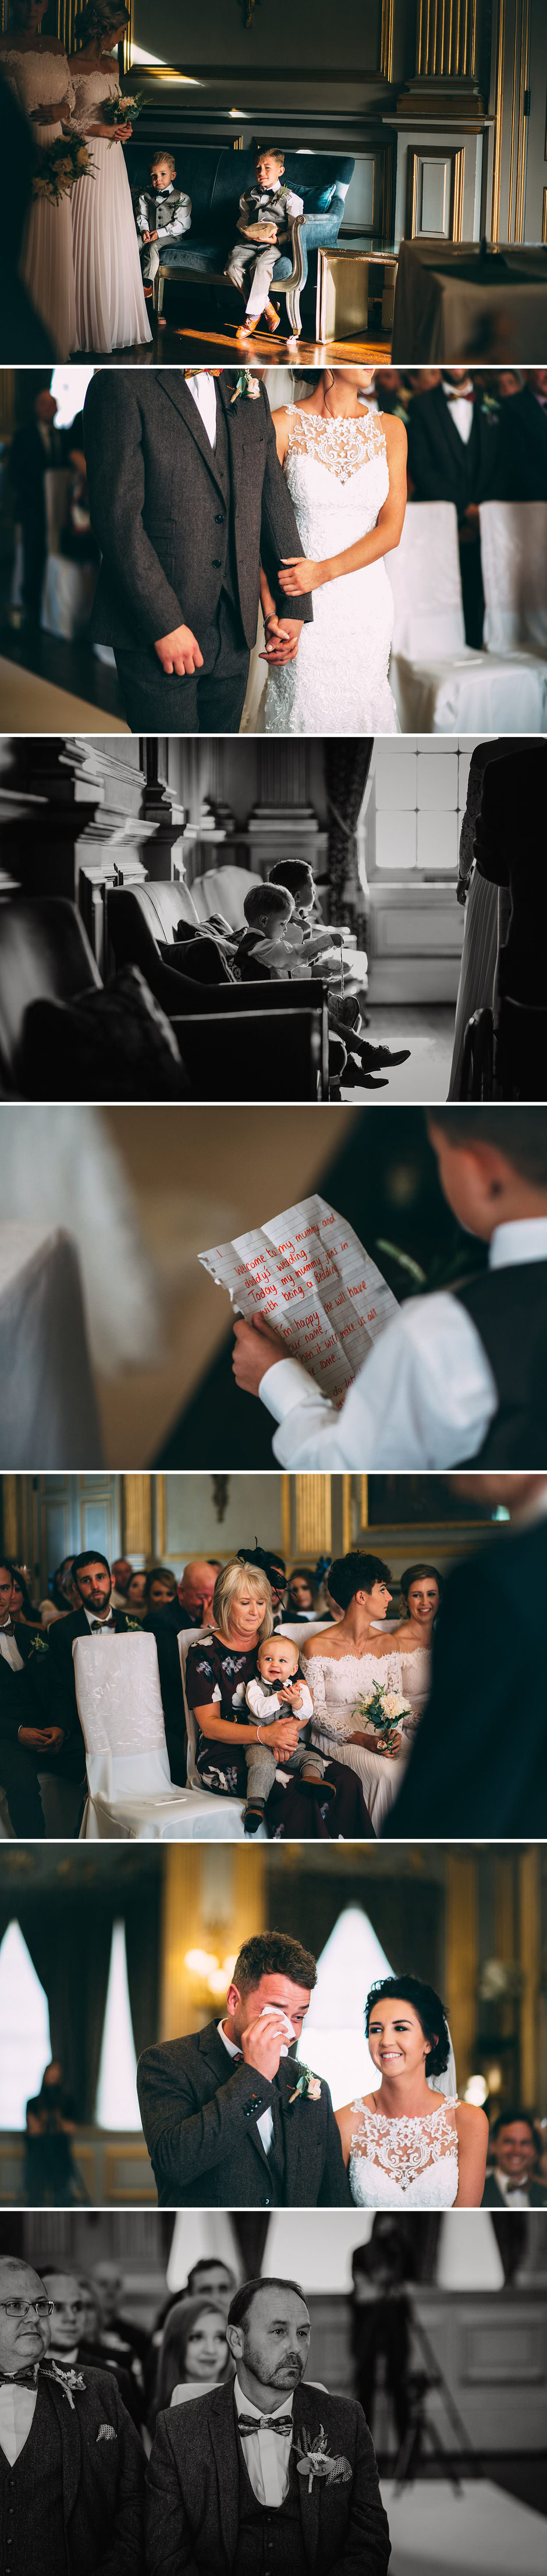 candid photographs during a wedding ceremony including bride and groom plus their guests